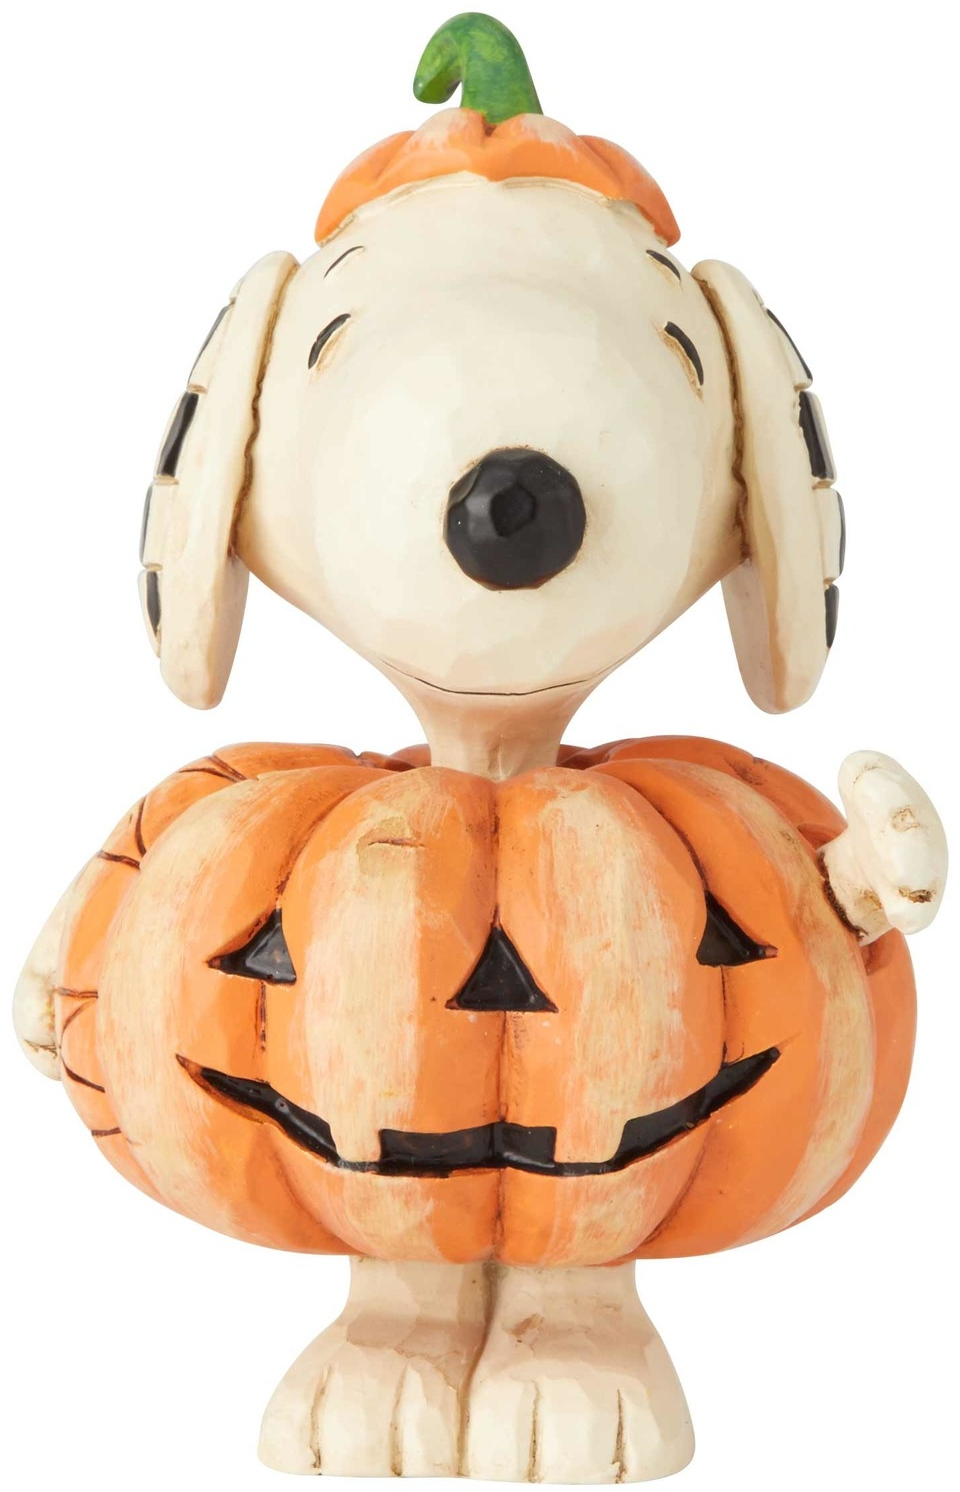 Jim Shore Peanuts 6002777 Mini Snoopy Pumpkin